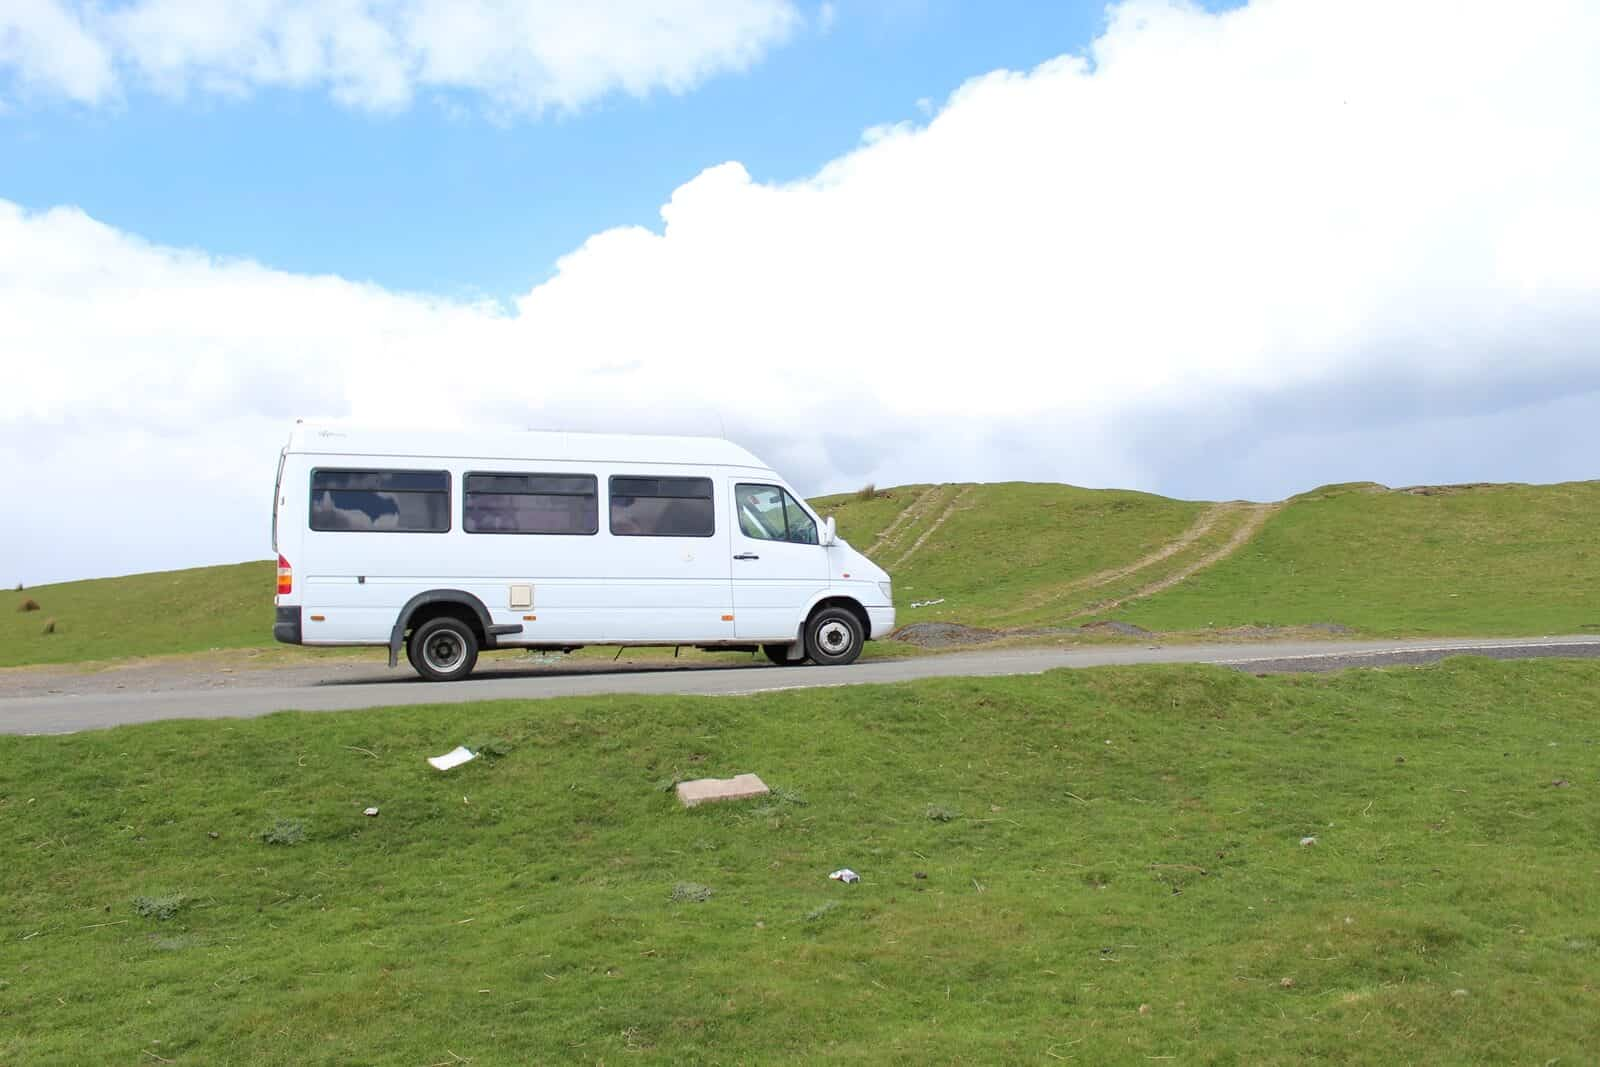 Travelling on a converted camper van